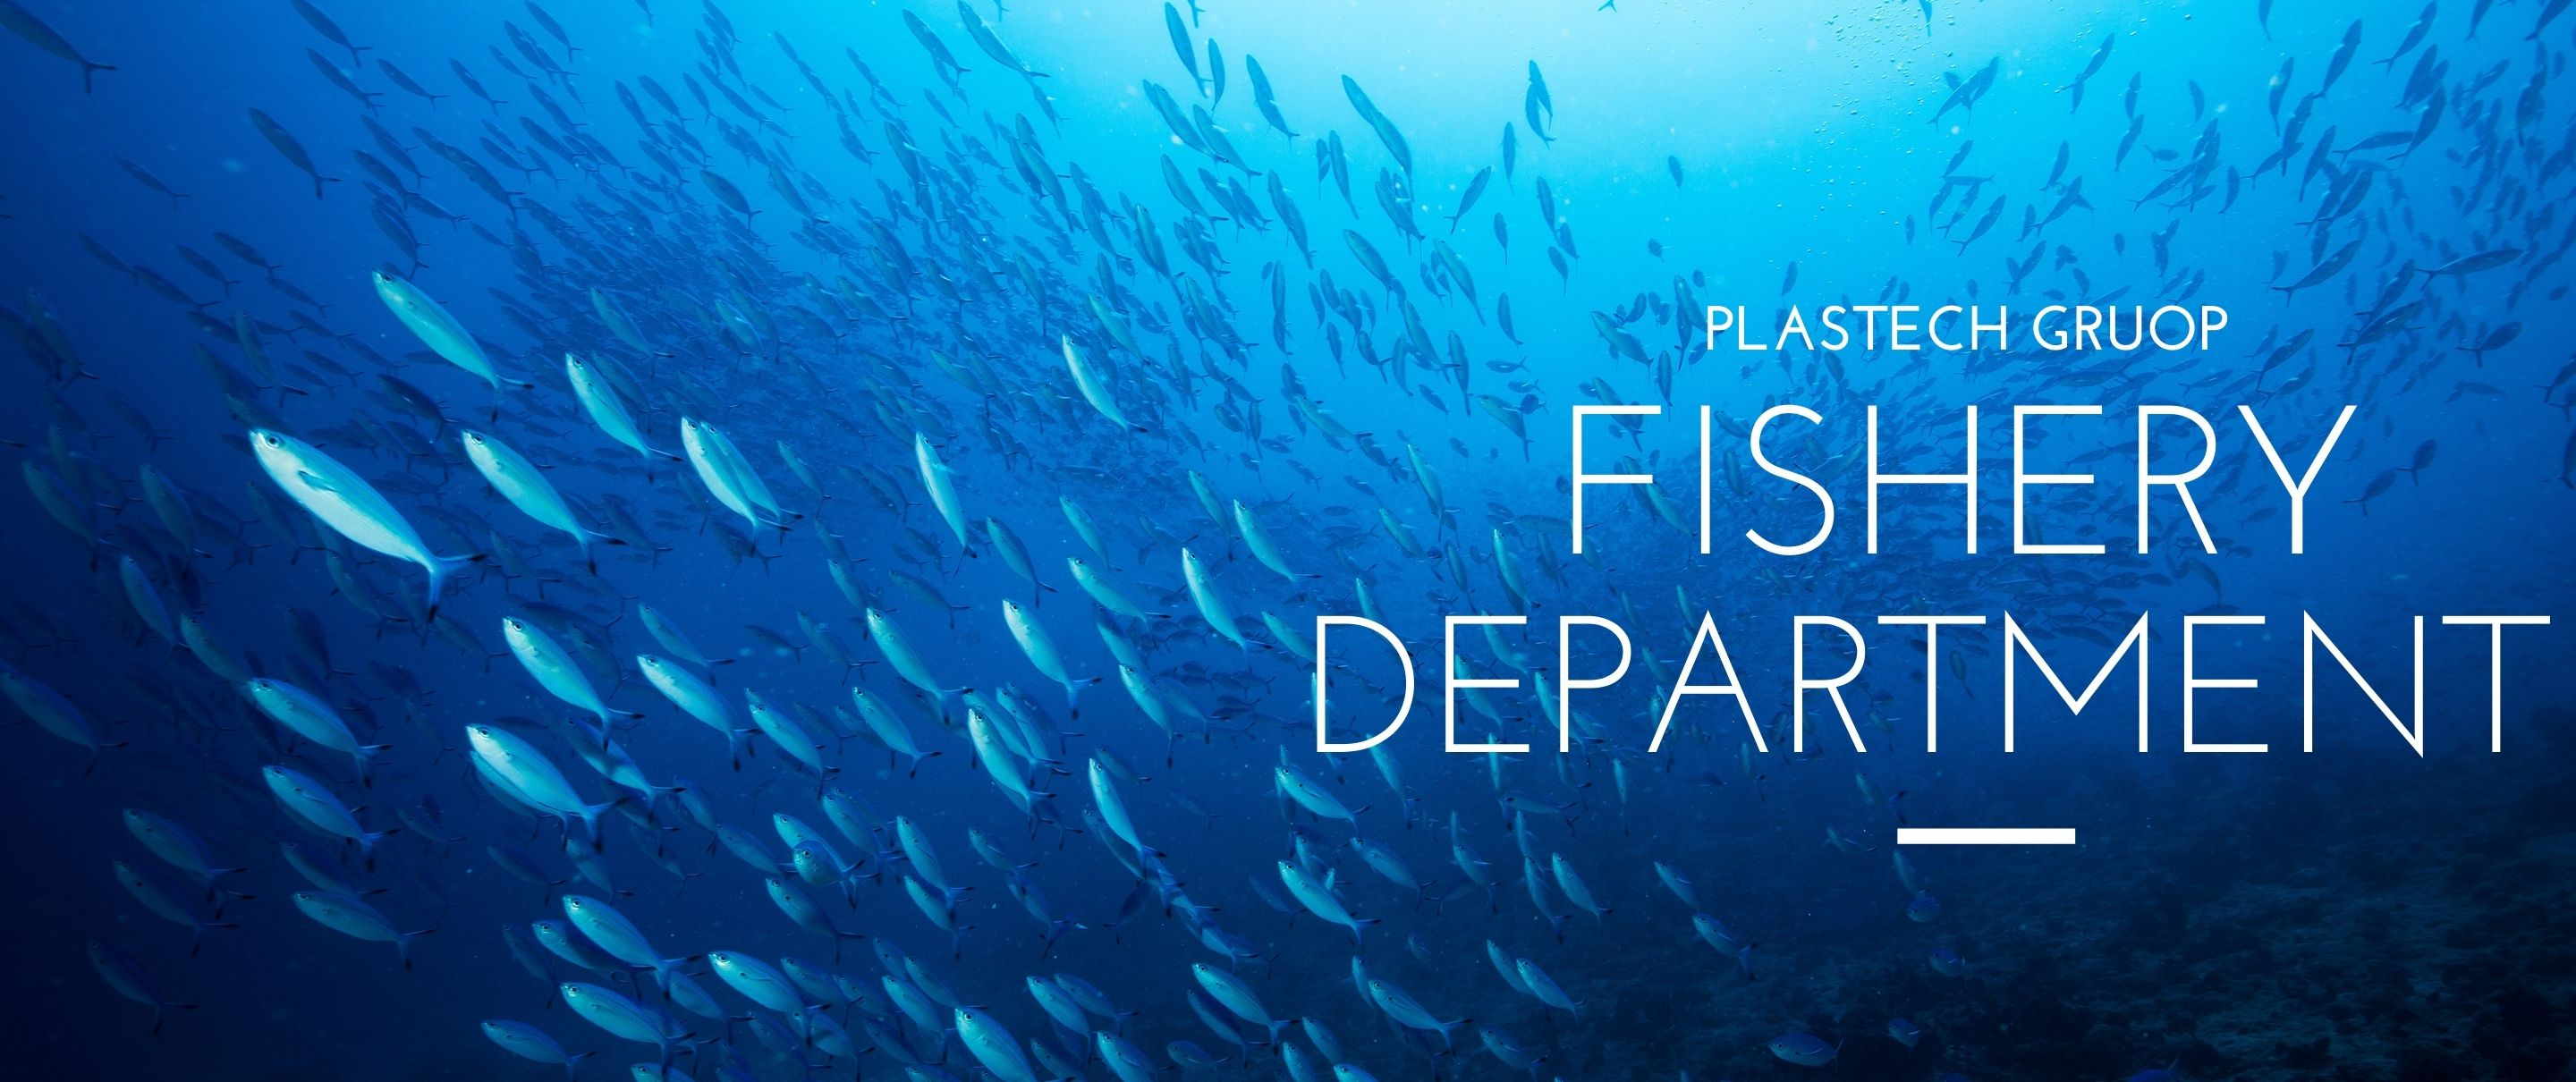 PLASTECH GROUP - FISHERY DEPARTMENT